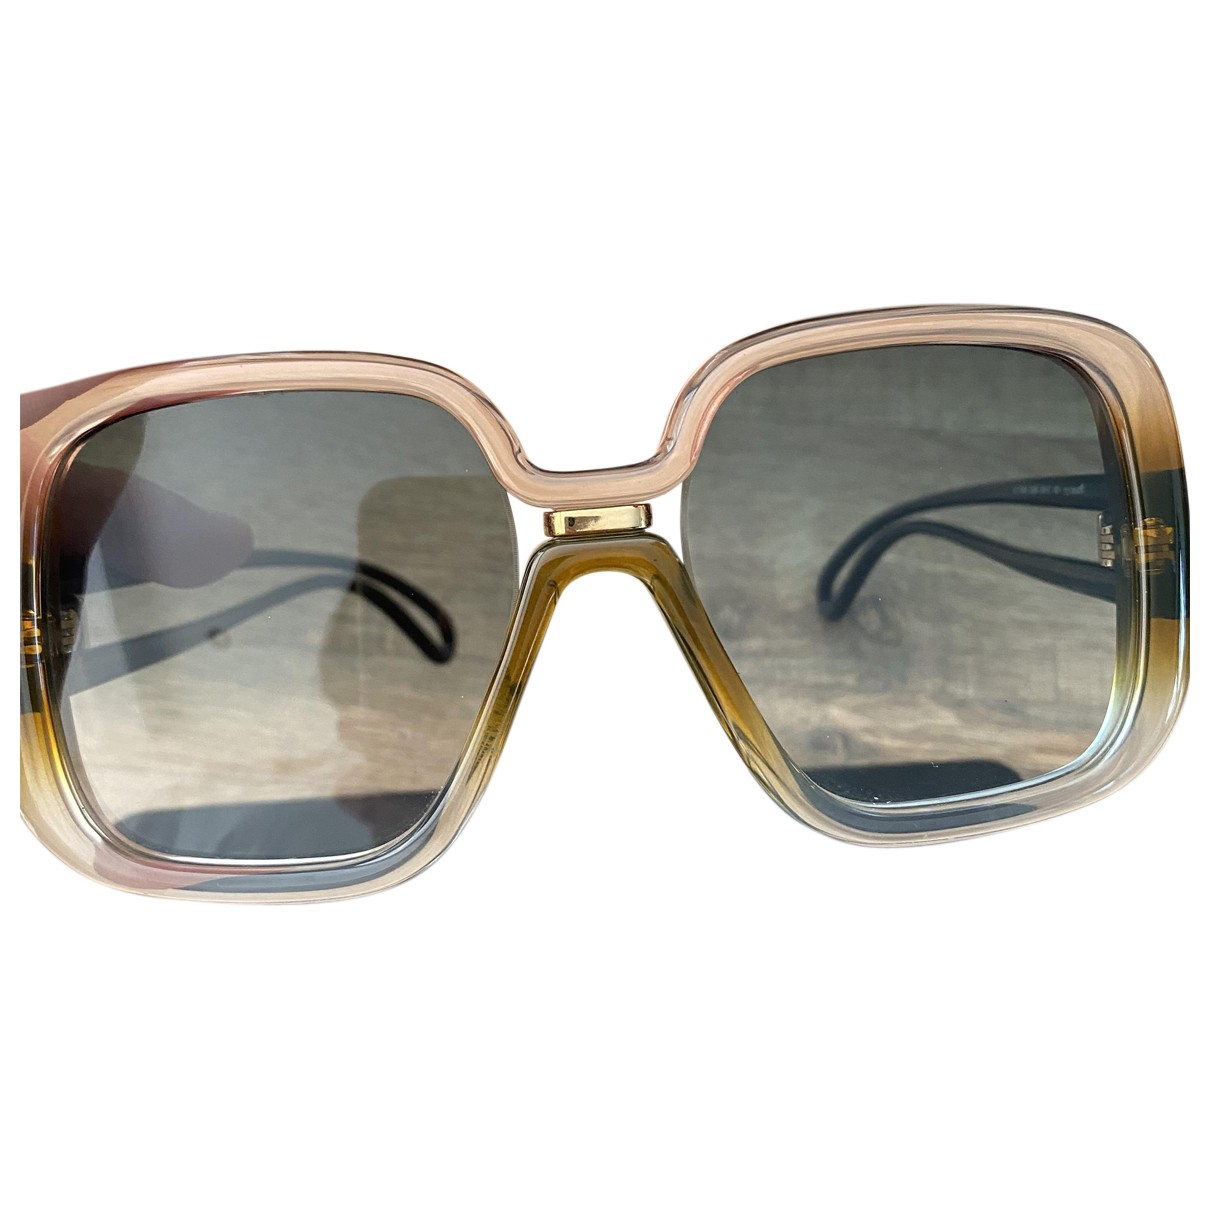 Givenchy N Pink Sunglasses for Women N